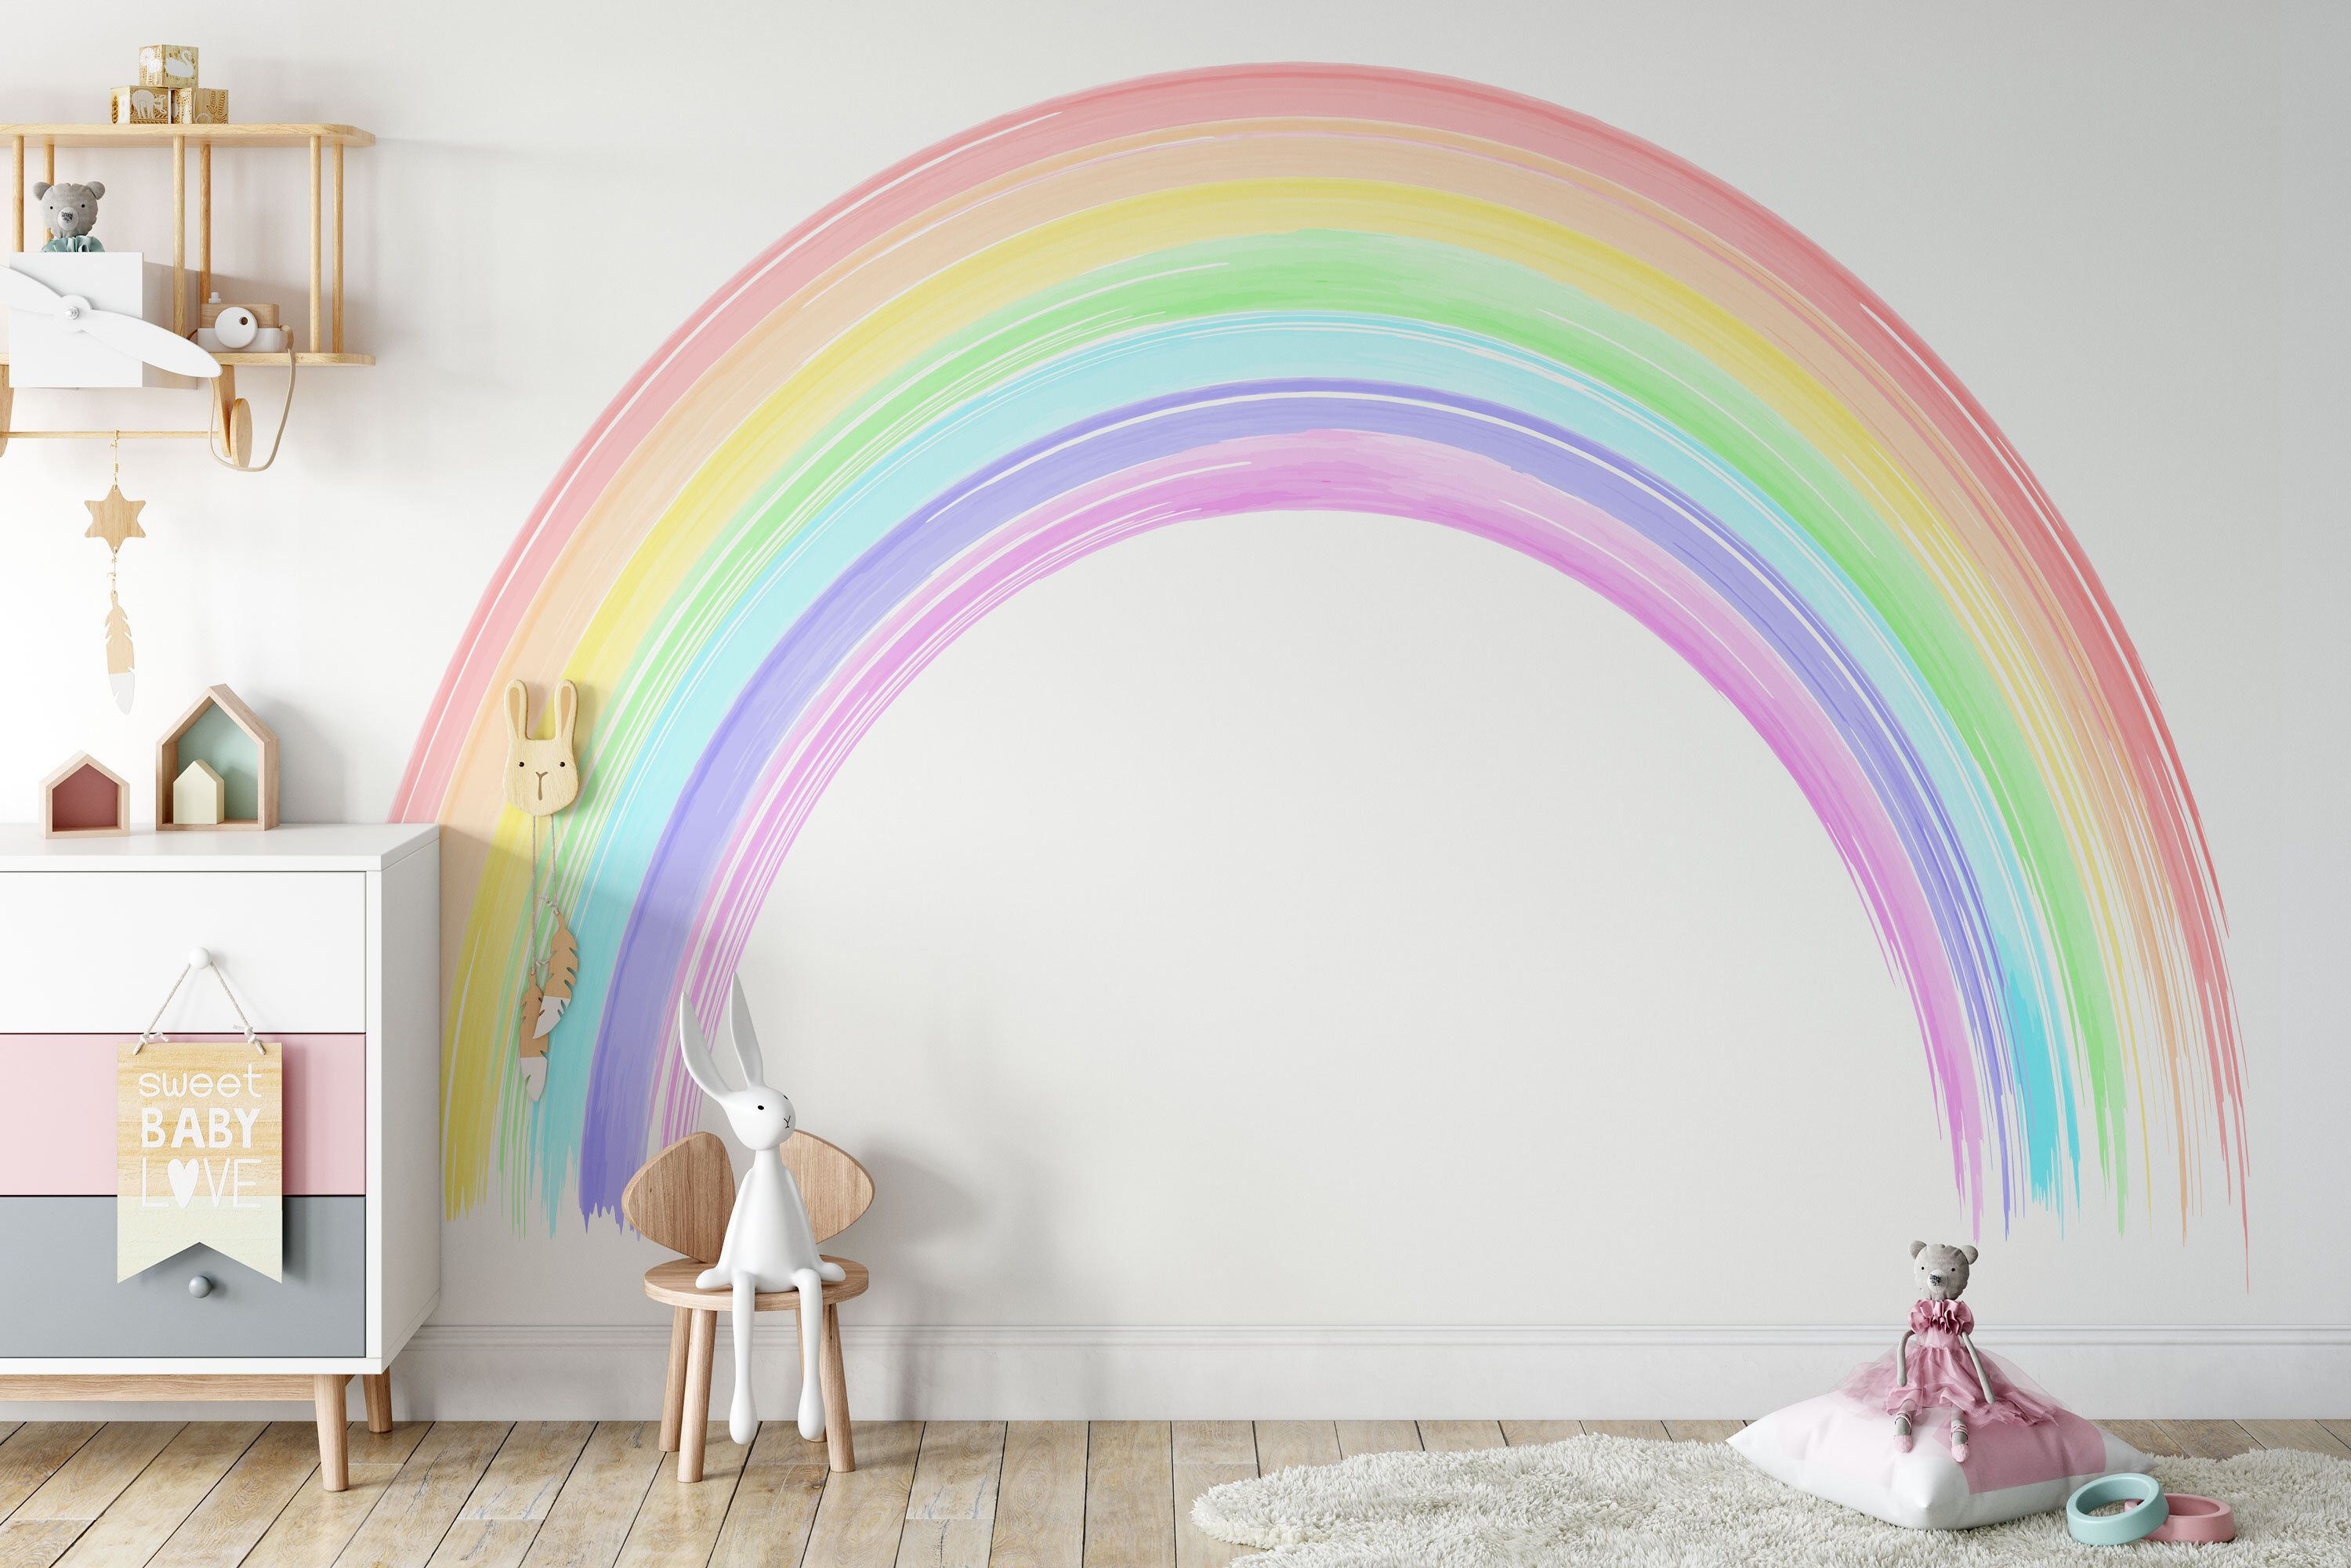 Seven Colours Of The Rainbow Wall Mural Colorful Rainbow Wall Etsy In 2021 Rainbow Girls Room Rainbow Room Rainbow Wall Decal